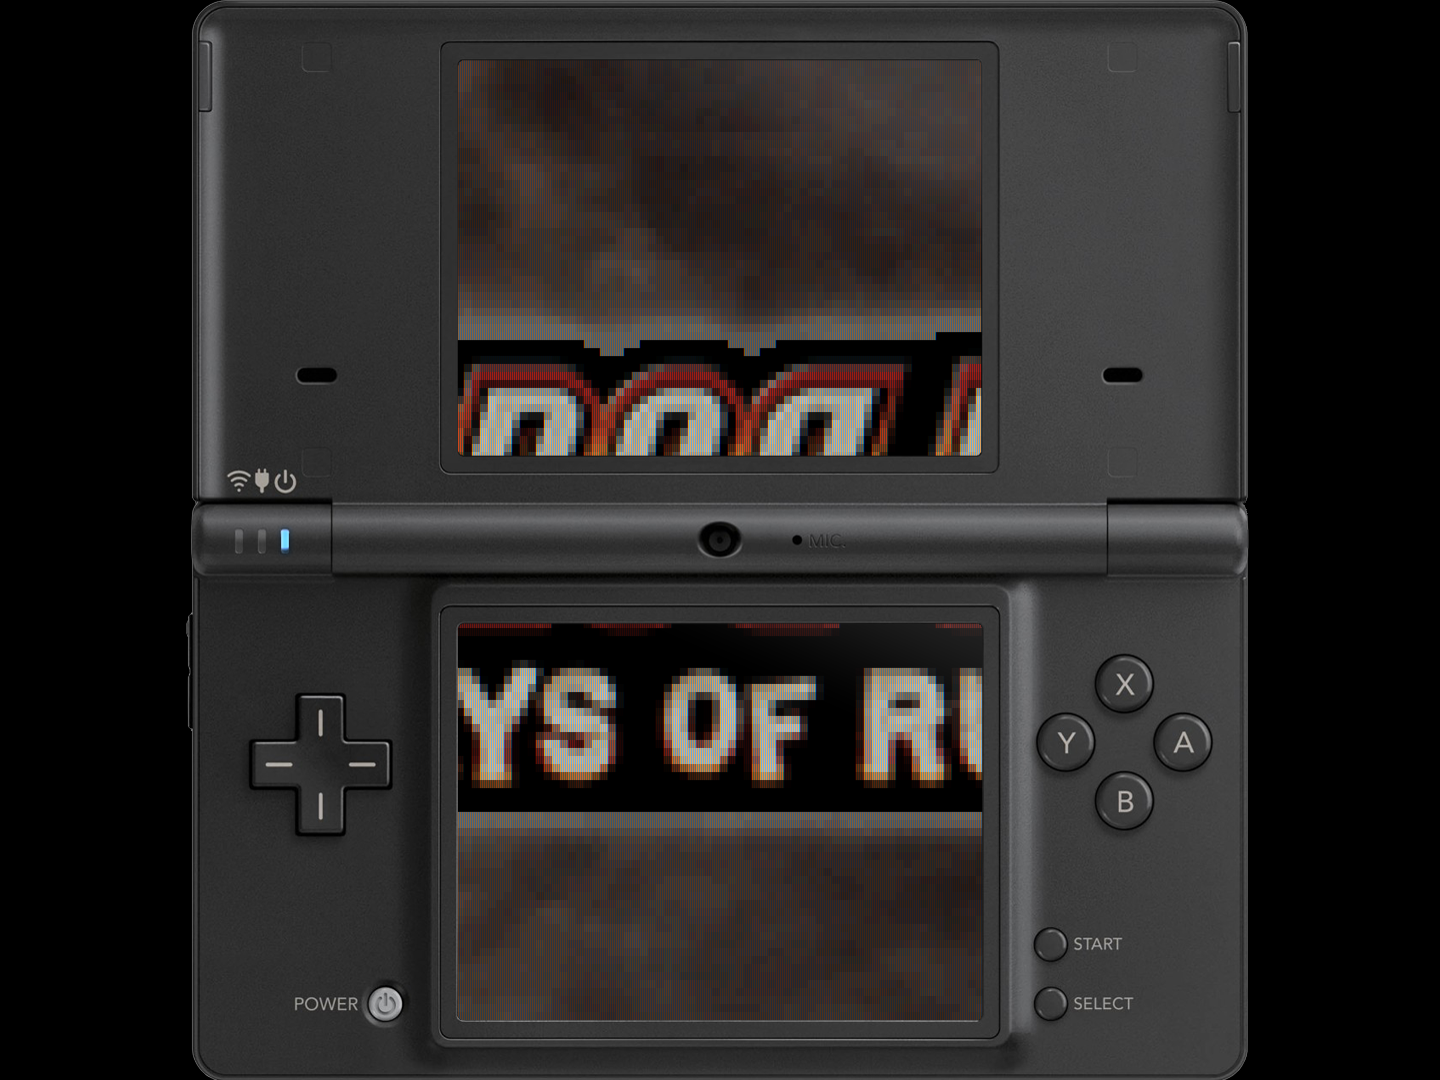 RETROARCH - The all-in-one emulator dreams are made of, son